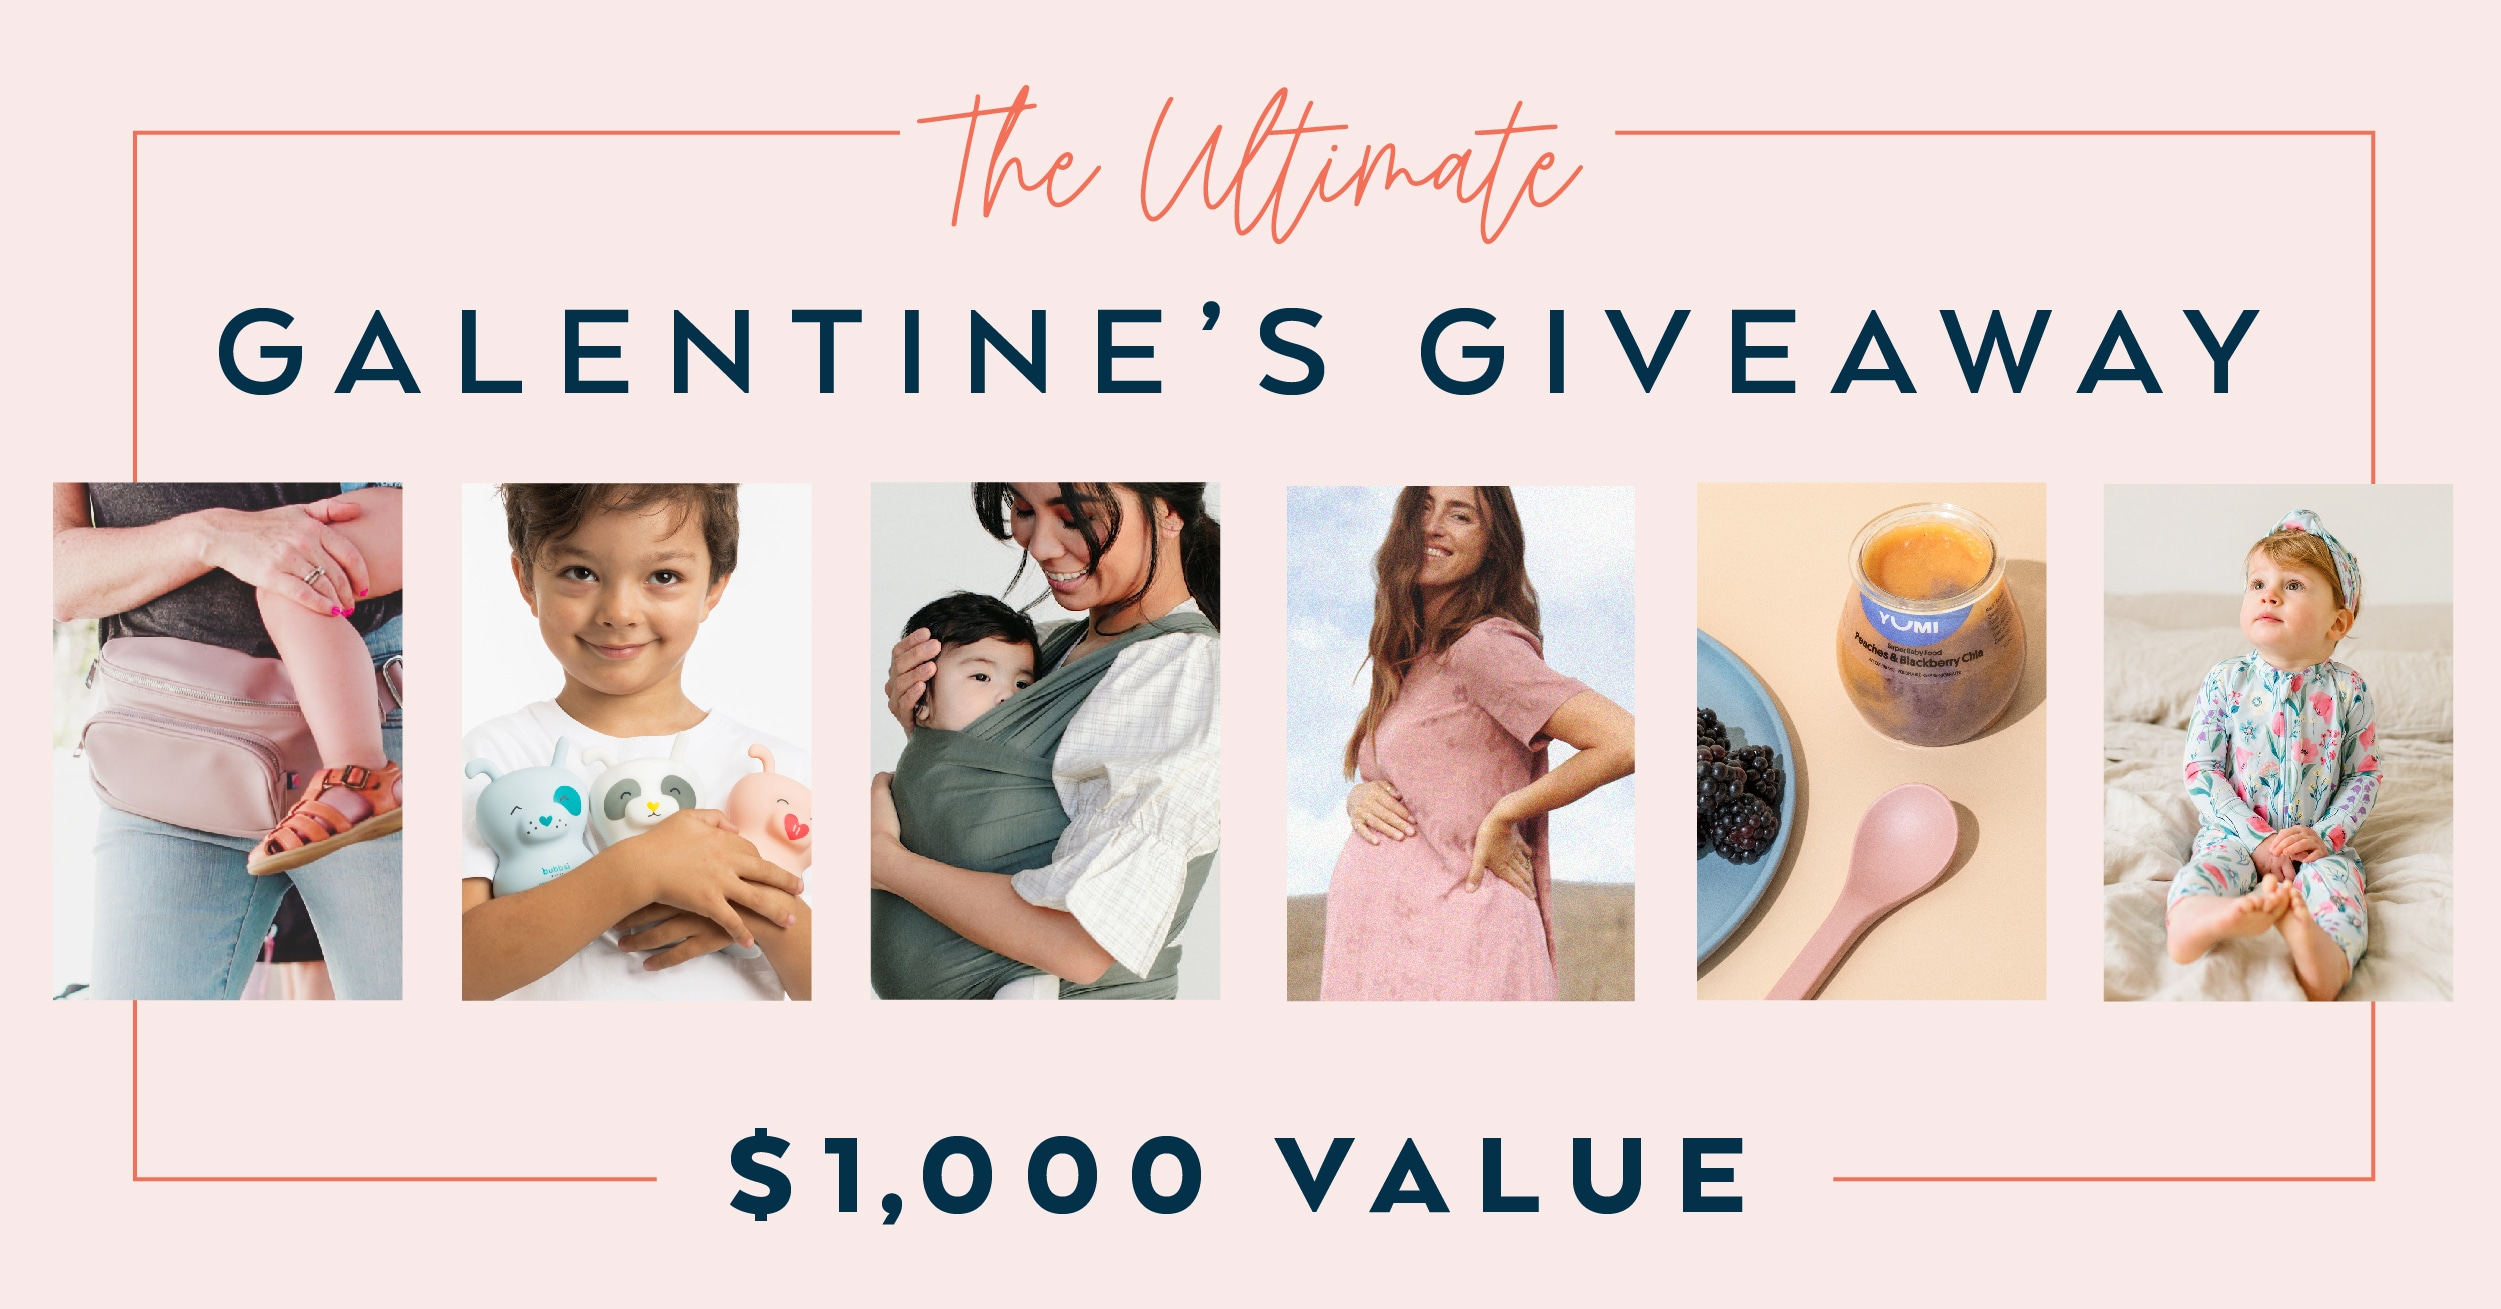 The Ultimate Galentine's Giveaway! 1 Kibou in your choice of color�packed full of accessories from @kiboubag $500 Gift card from @hatchgal $100 Gift cards from @sollybaby @yumi and @louloulollipop , $173 The Whole Gang of Clean Coconut Oil Skincare + Body Giveaway Image